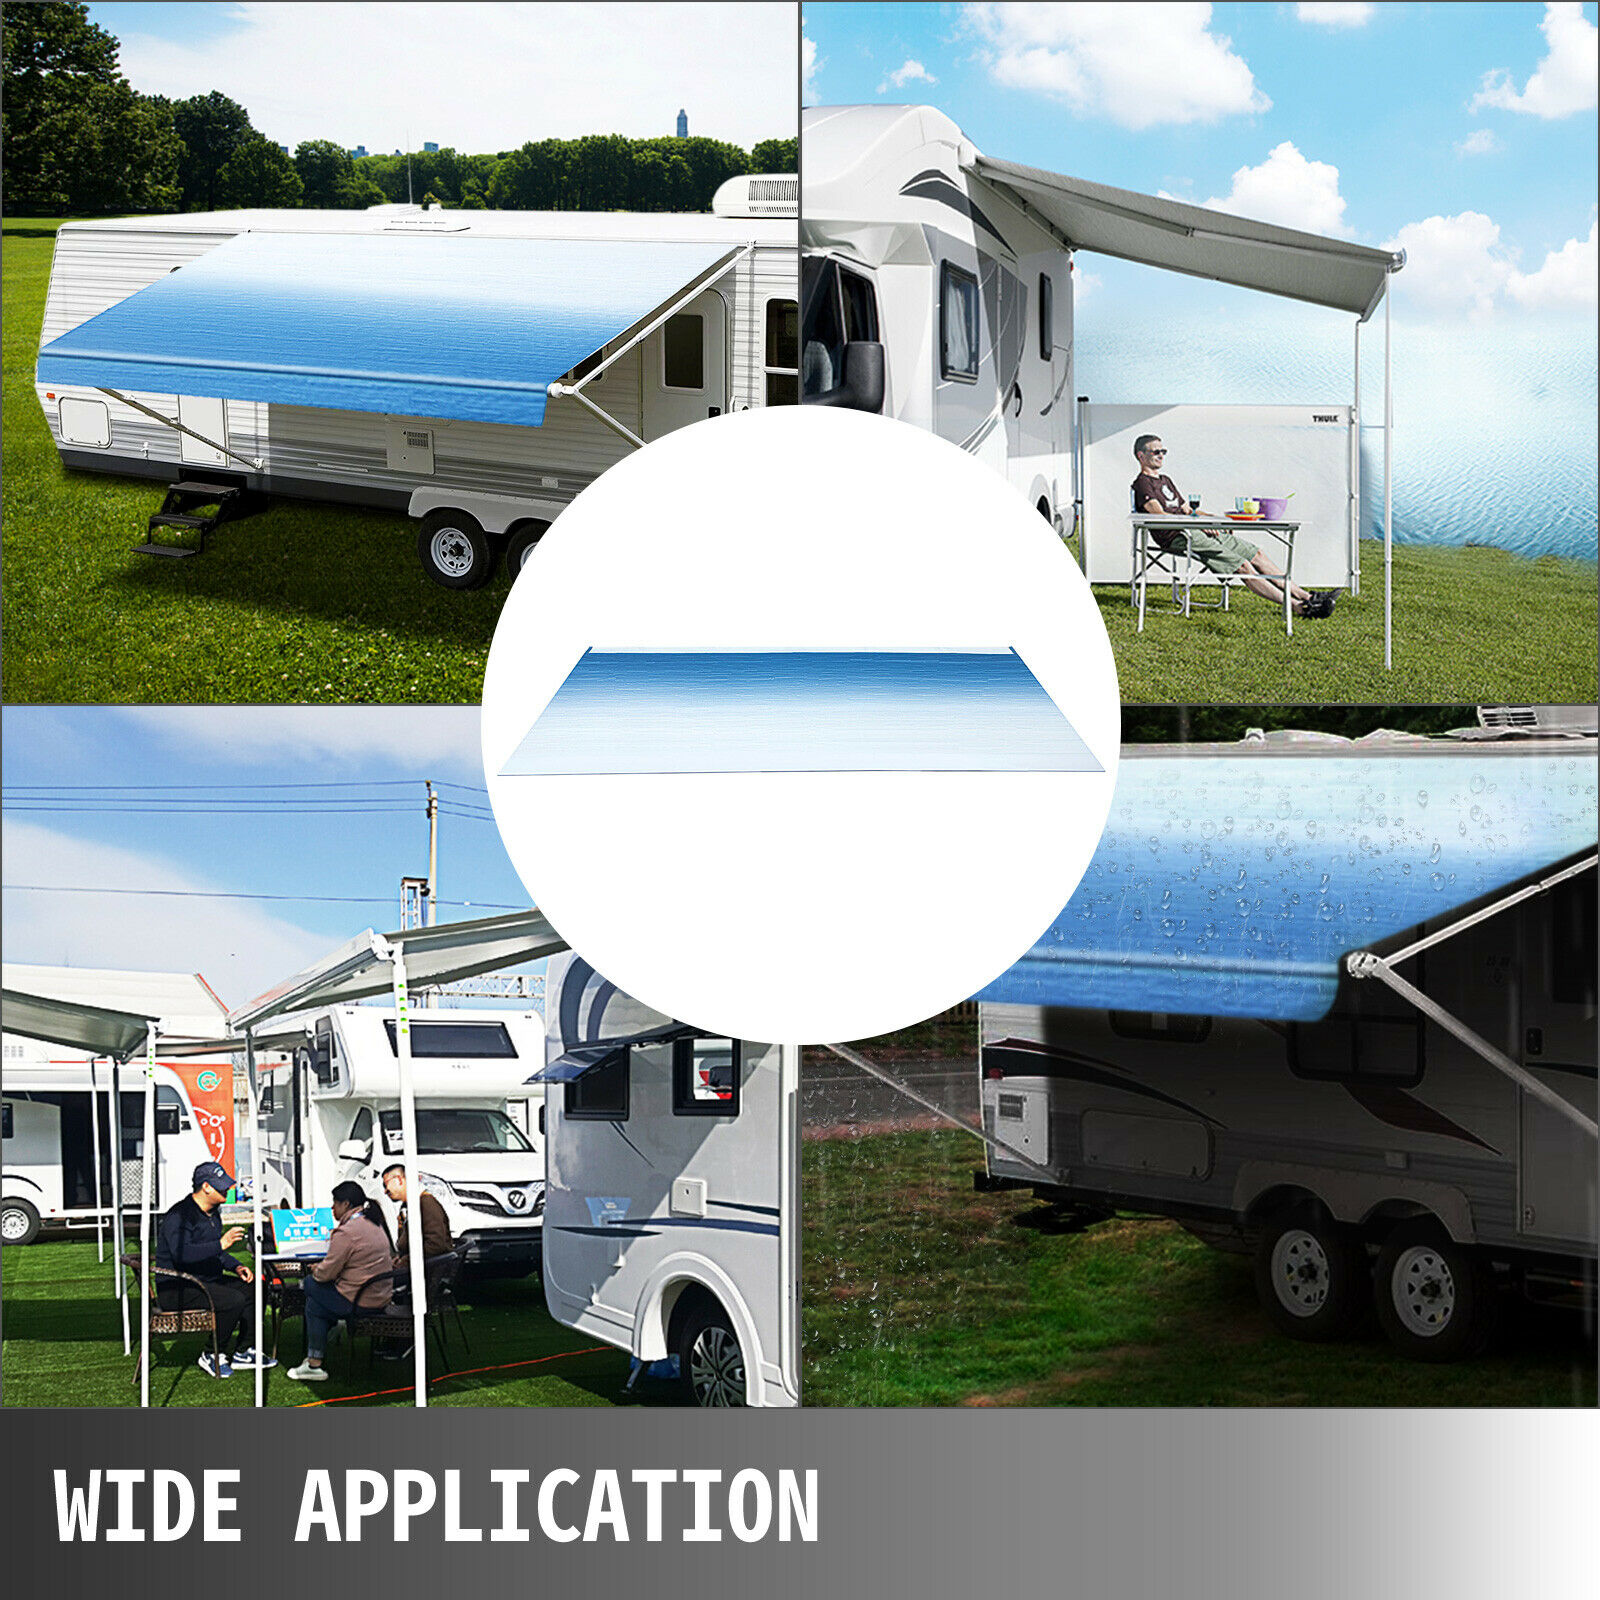 Patio Awning Replacement Ocean Blue Fade Van Trailer Awning Canopy Patio Camping Car Awning SUV Durable 15oz Vinyl Roller Tube for RV VEVOR RV Awning 19 Camper Awning Fabric